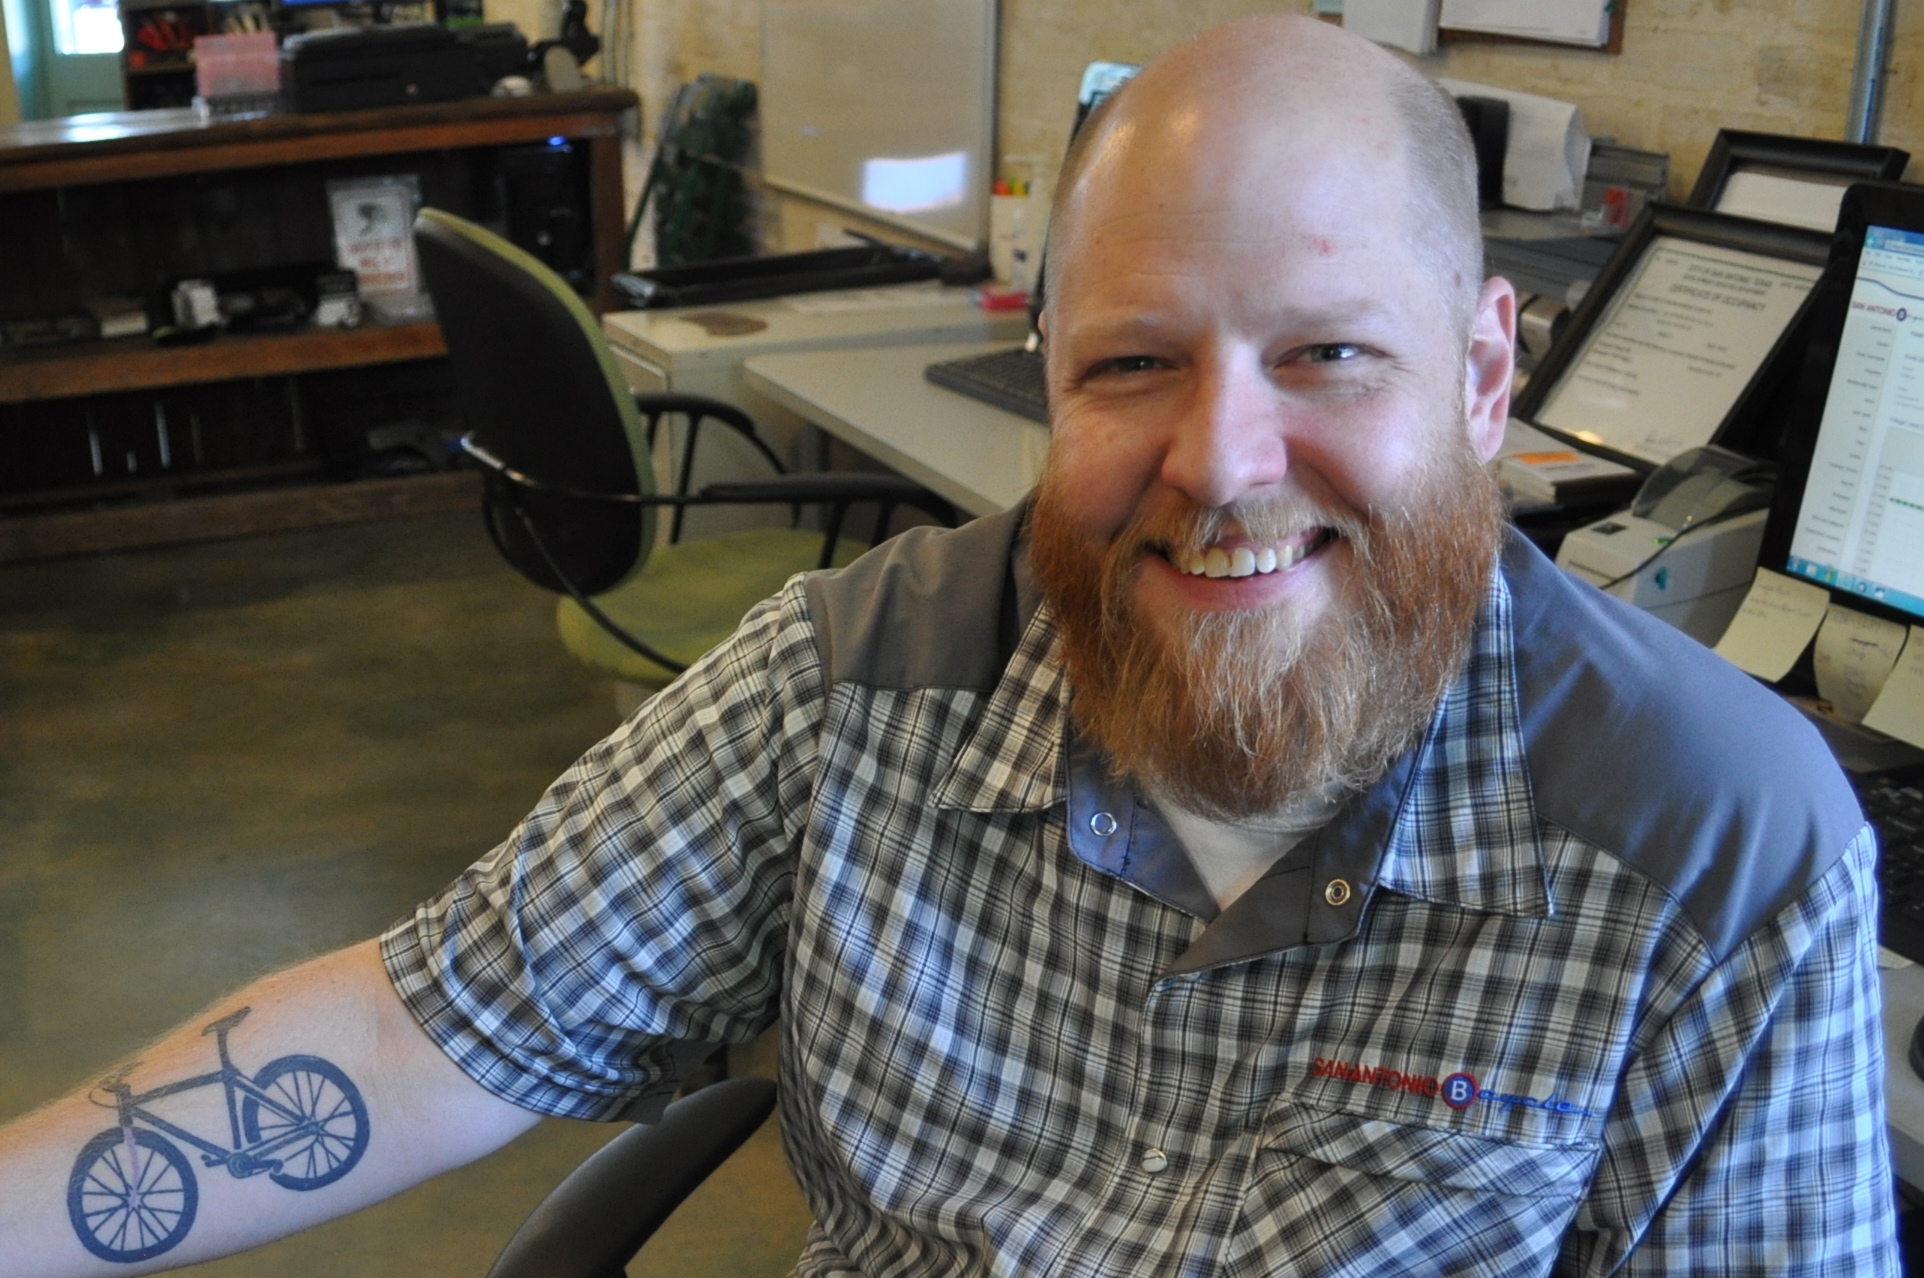 Smiling Man With Cycle Tattoo On Arm